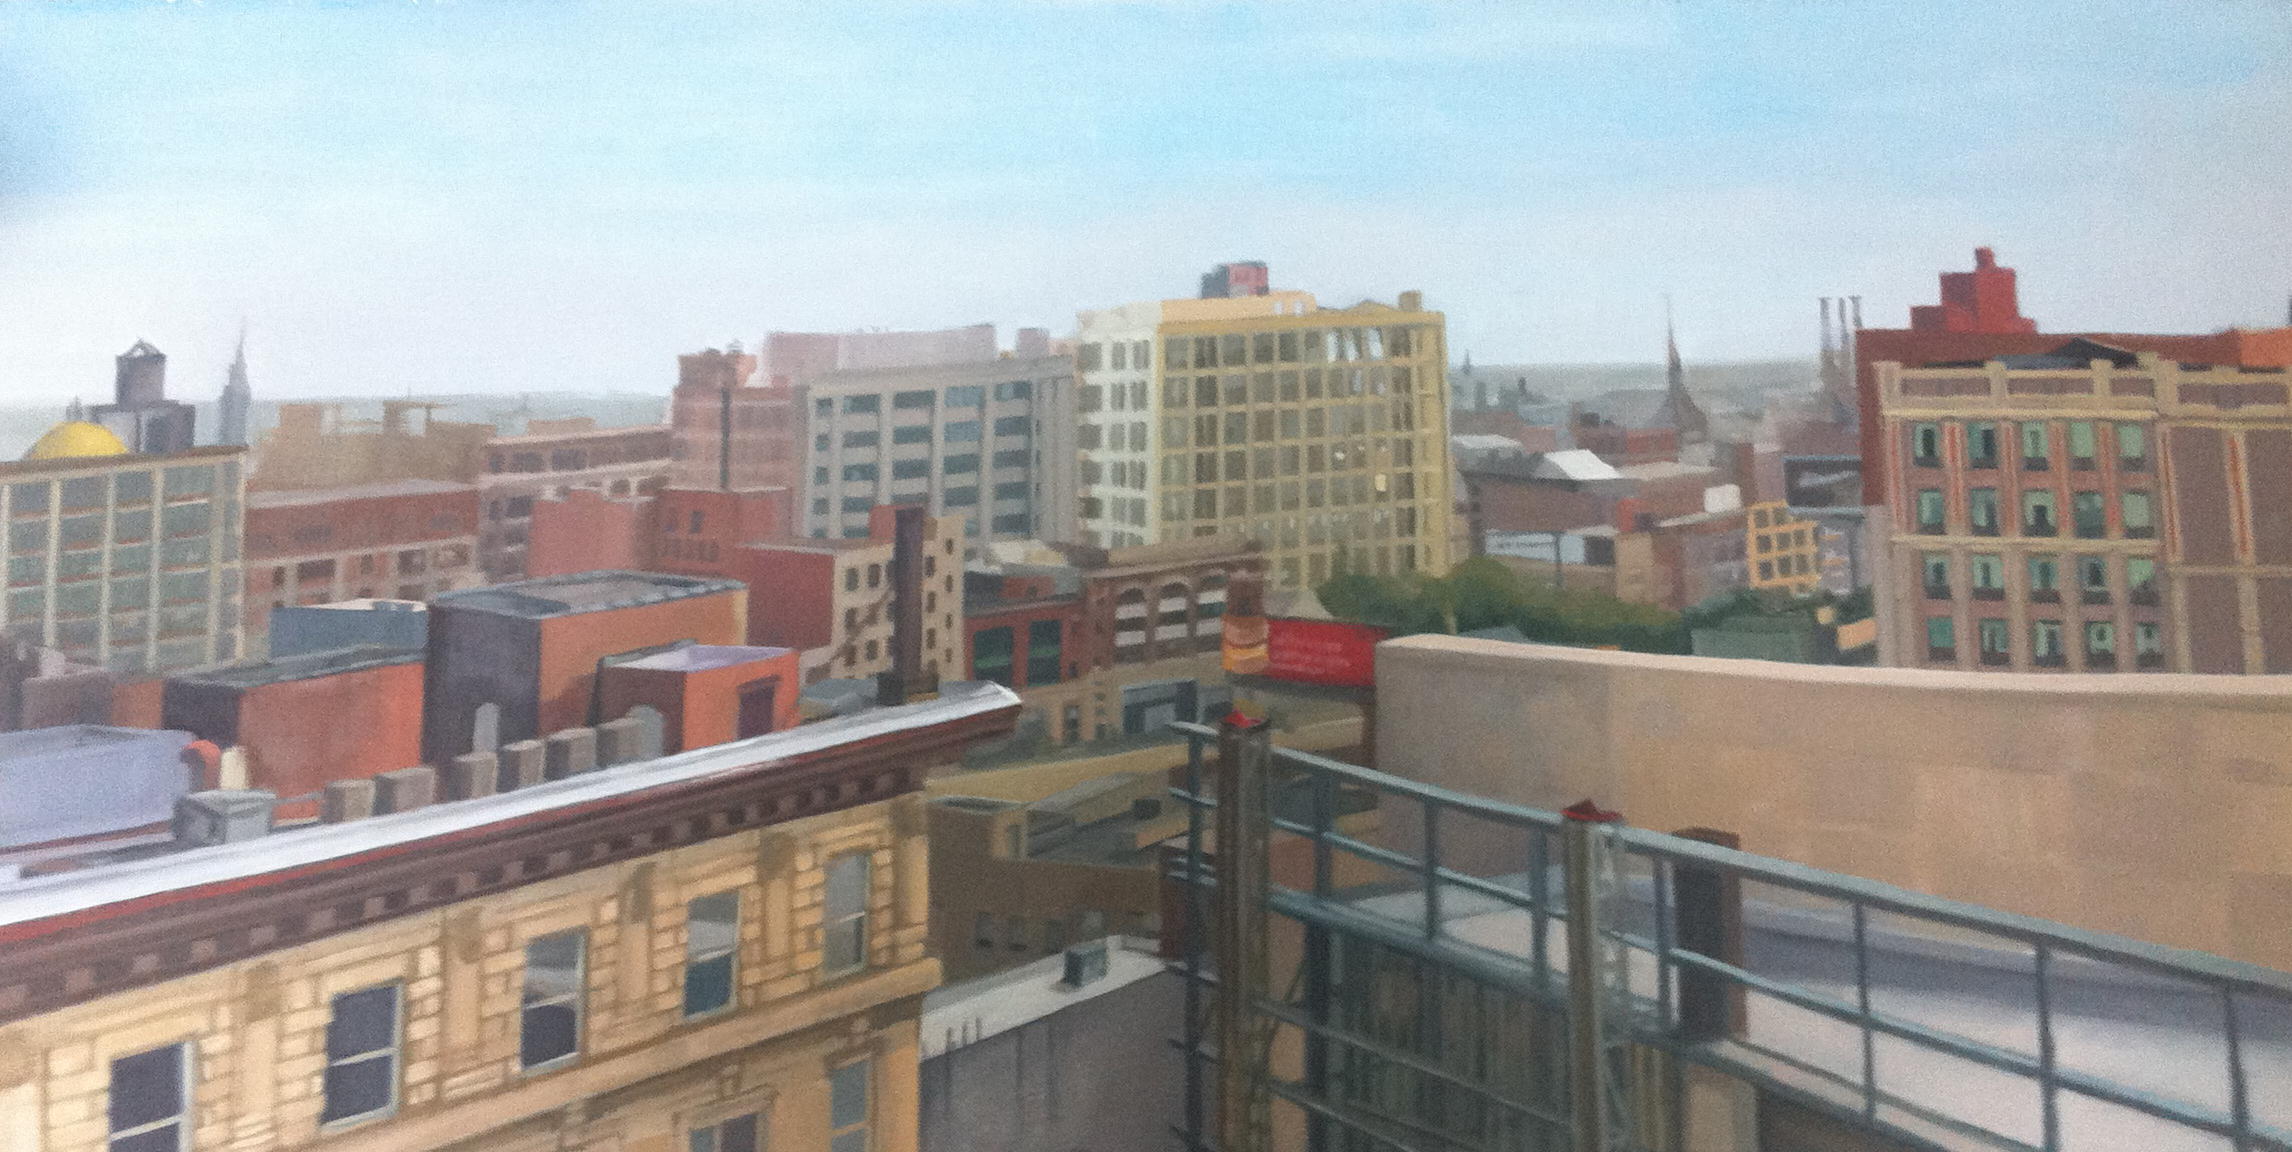 Over Broad and Race by Lisa David, Oil on Board 2010